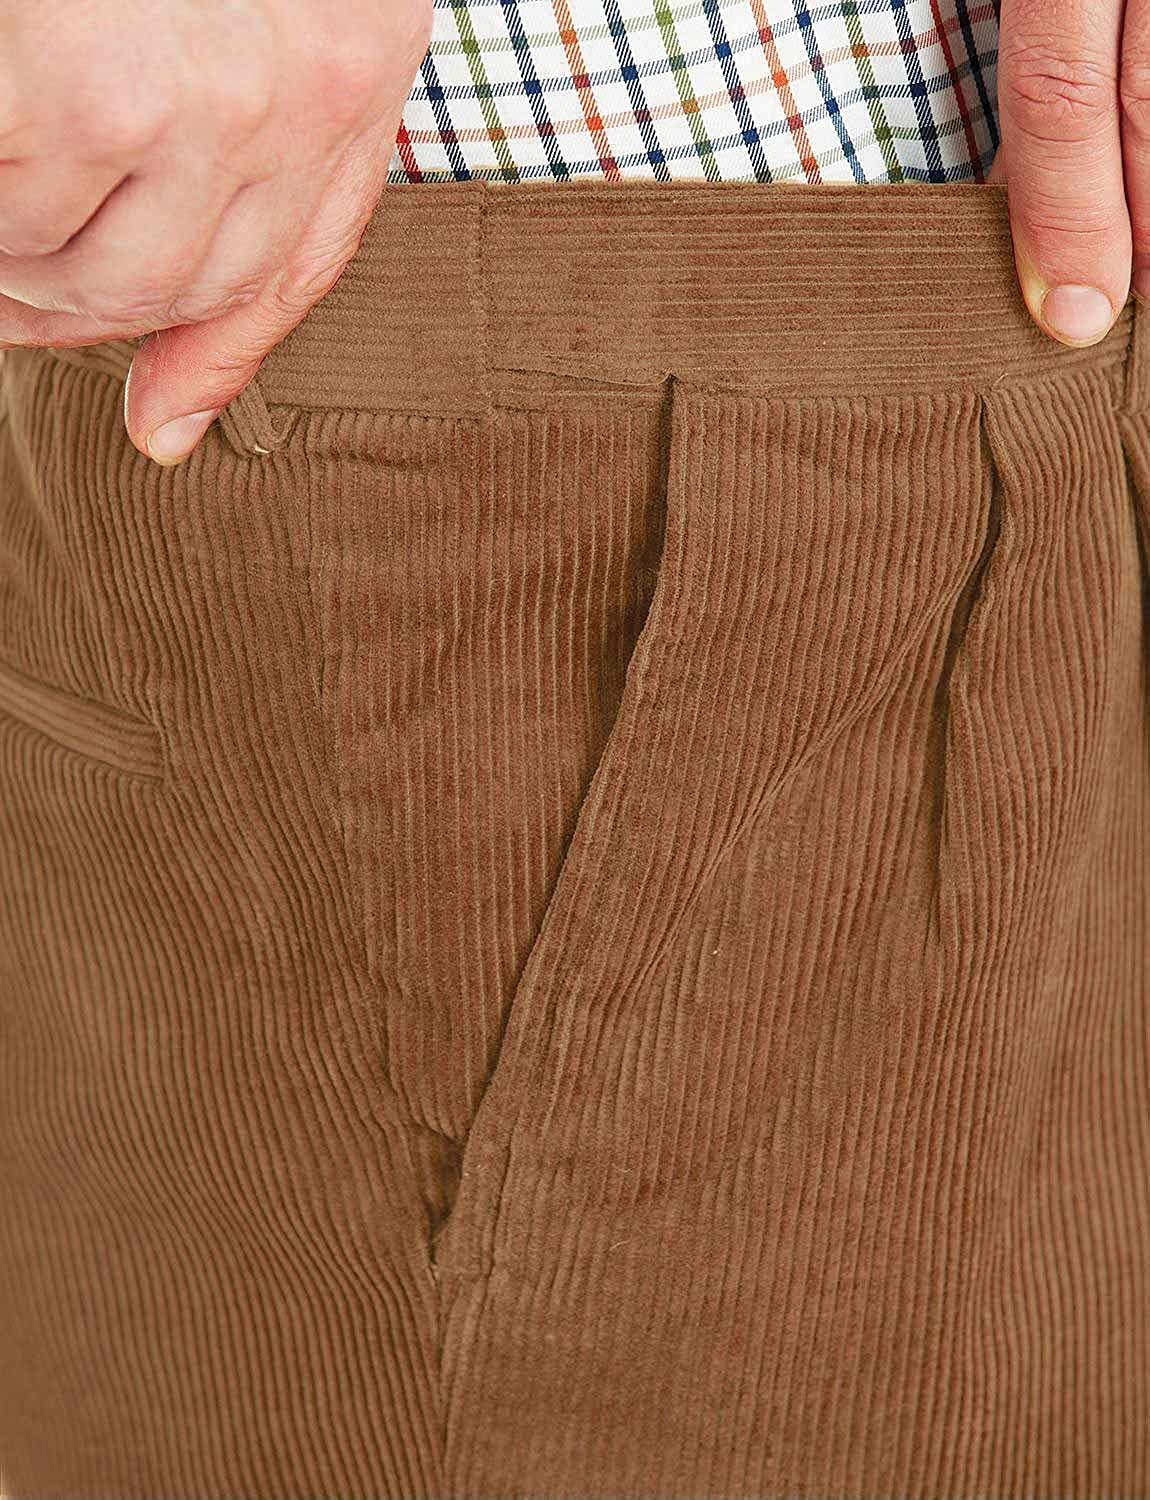 Mens Corduroy Cotton Trouser Pants with Hidden Extra Waistband Chums